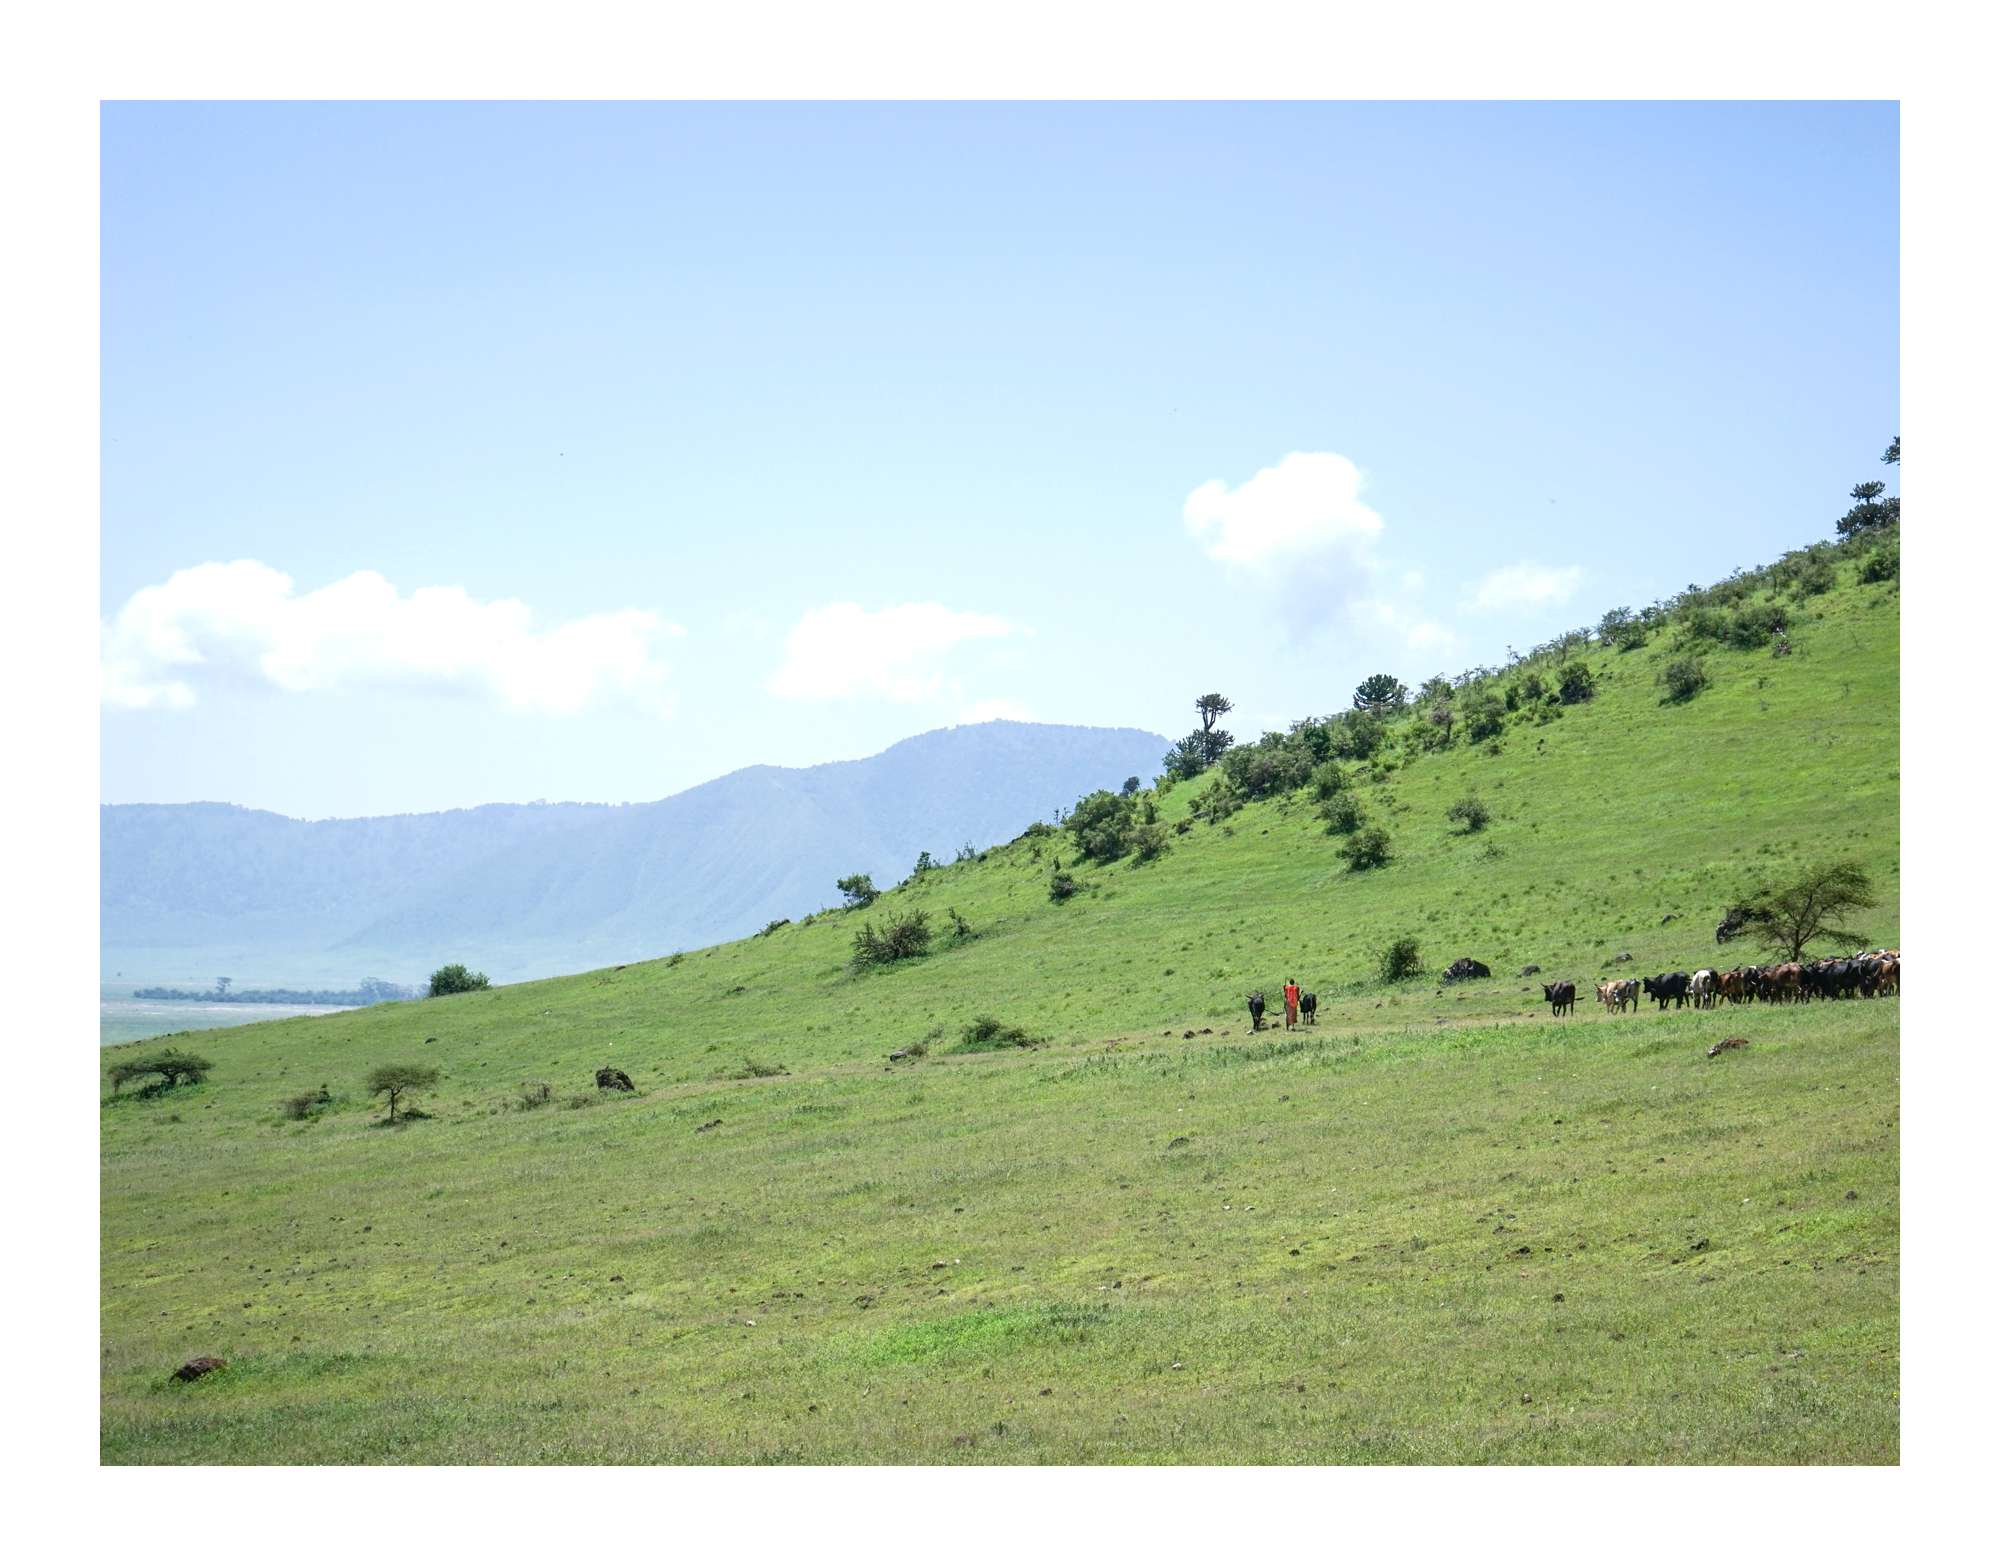 Maasai with cattle near Ngorongoro Crater in Tanzania